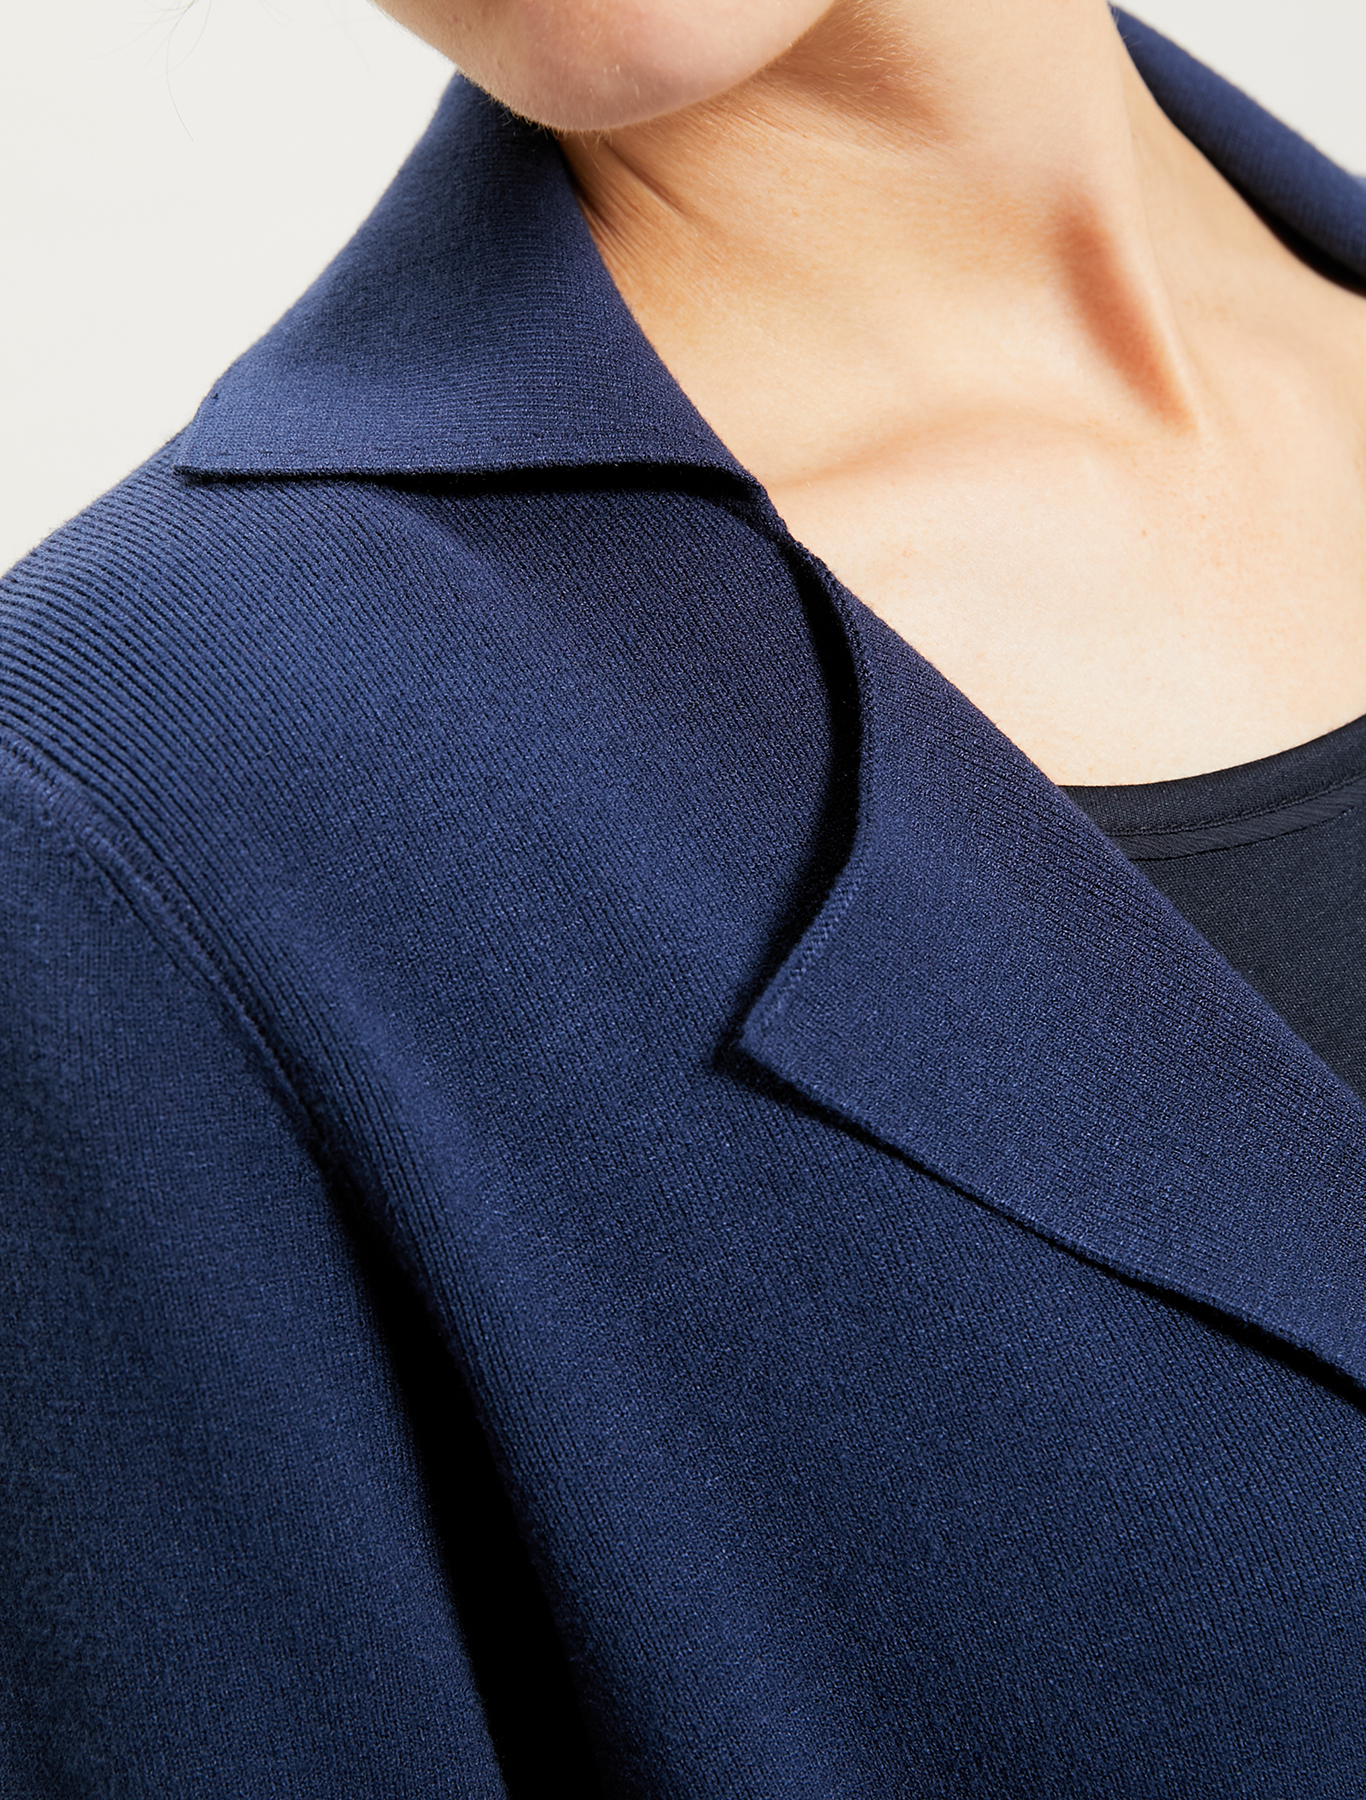 Cardigan with lapels and belt - navy blue - pennyblack